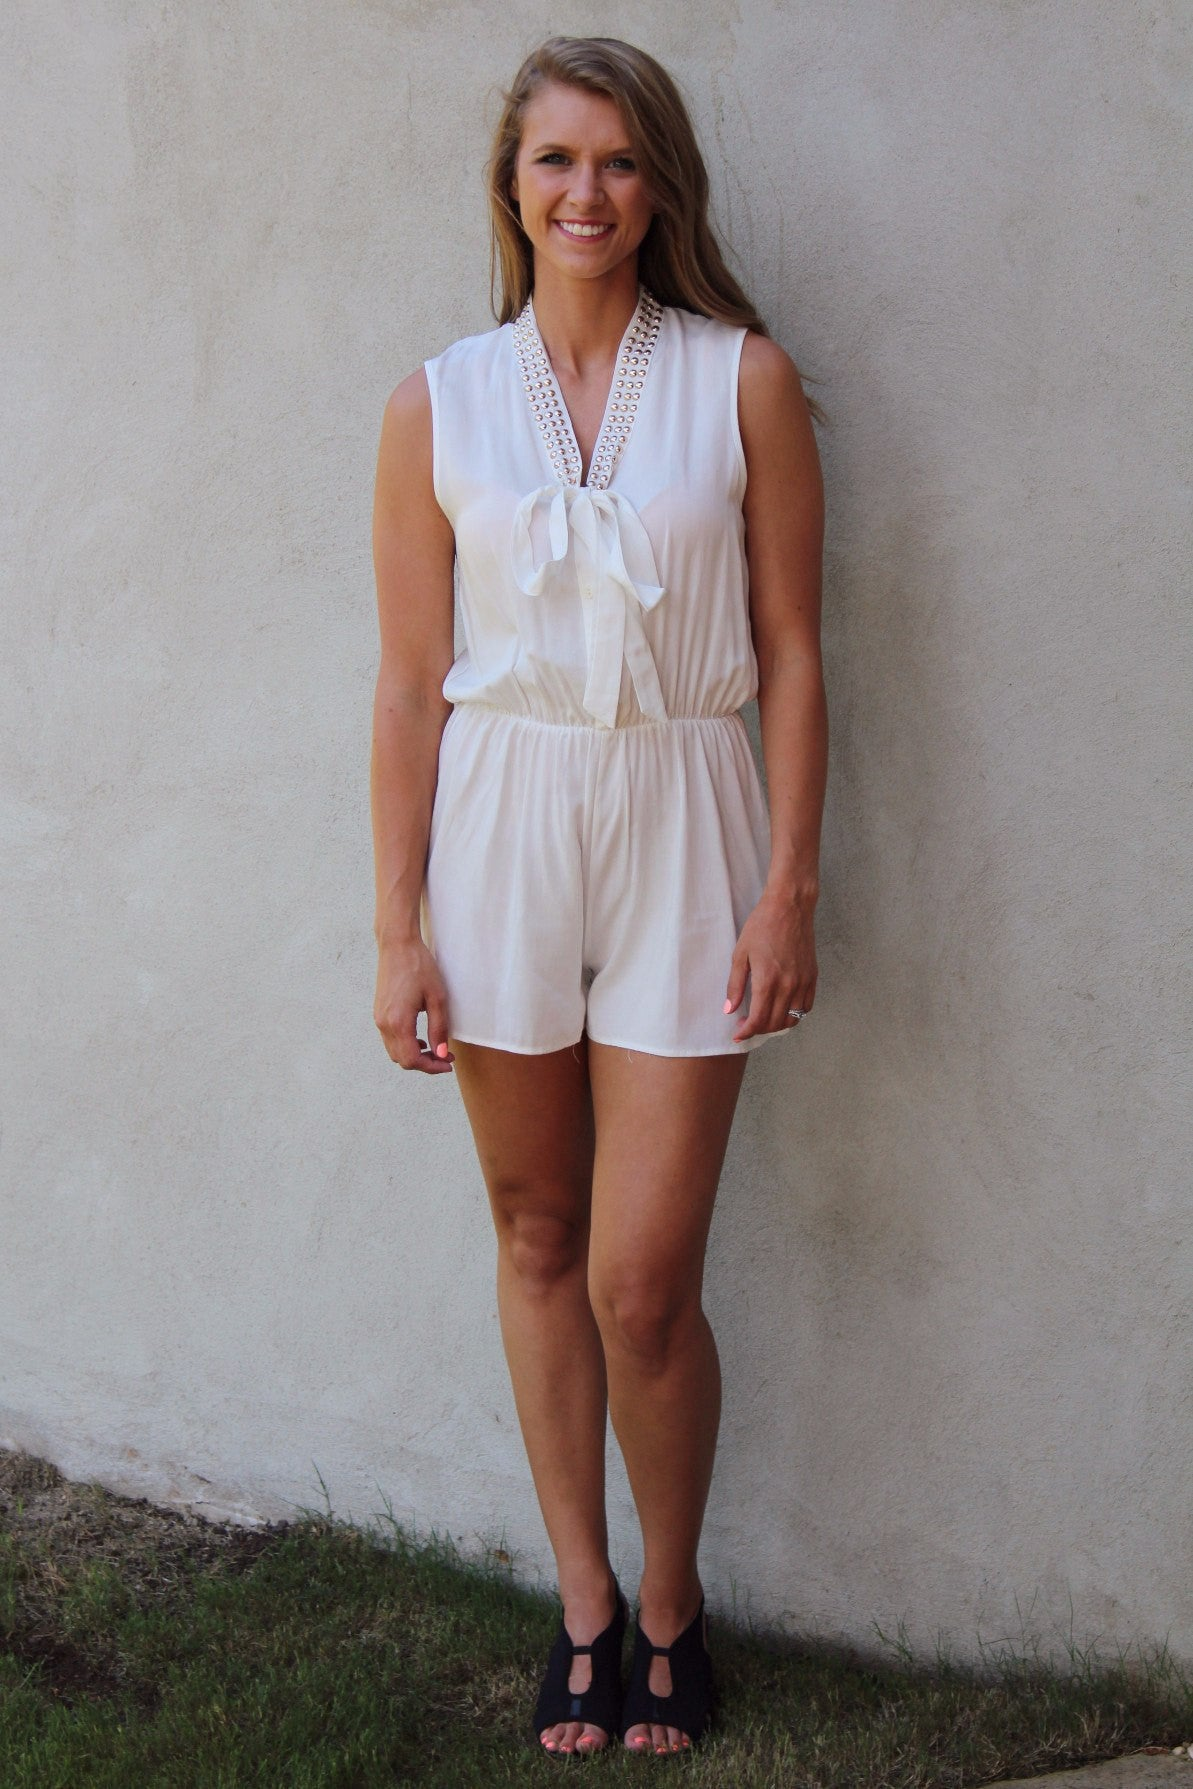 99aecfaf93f Keeping it Classy White Romper - Ambees Boutique